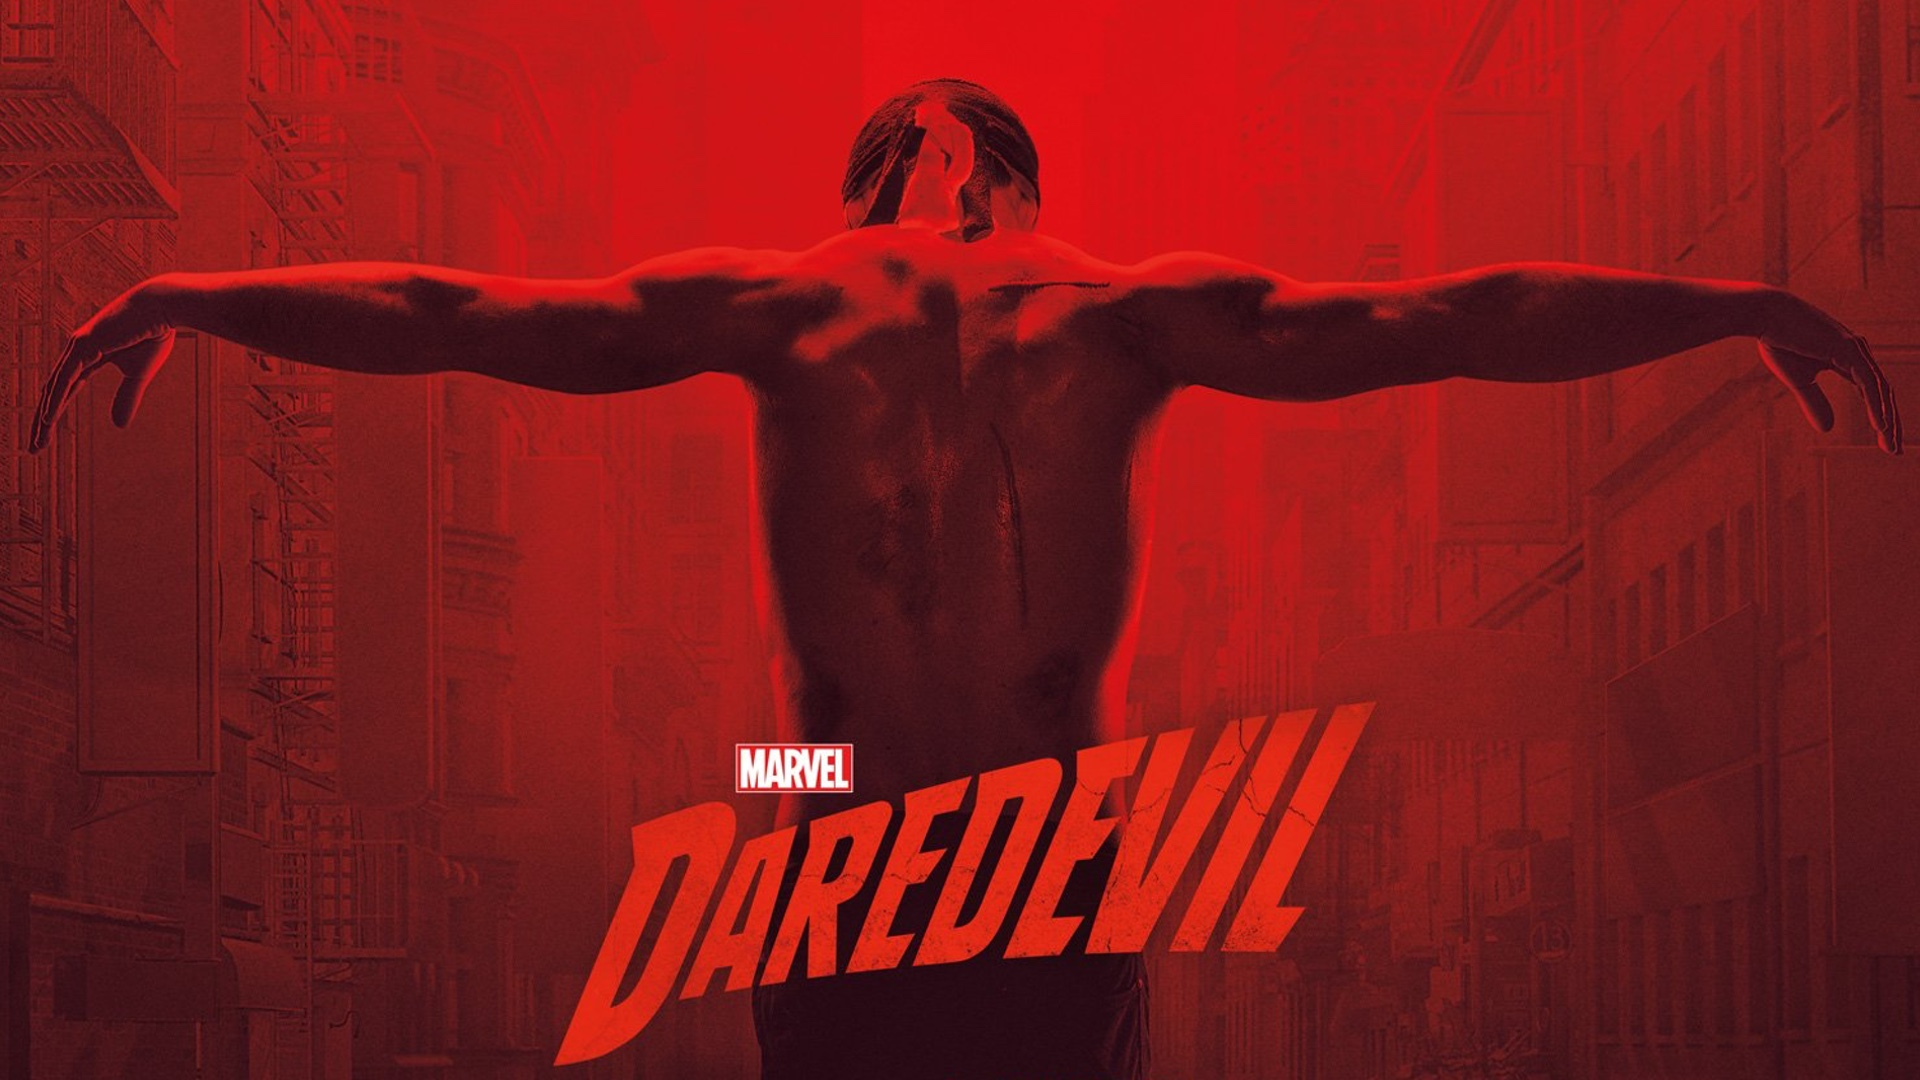 Marvel's Daredevil canceled